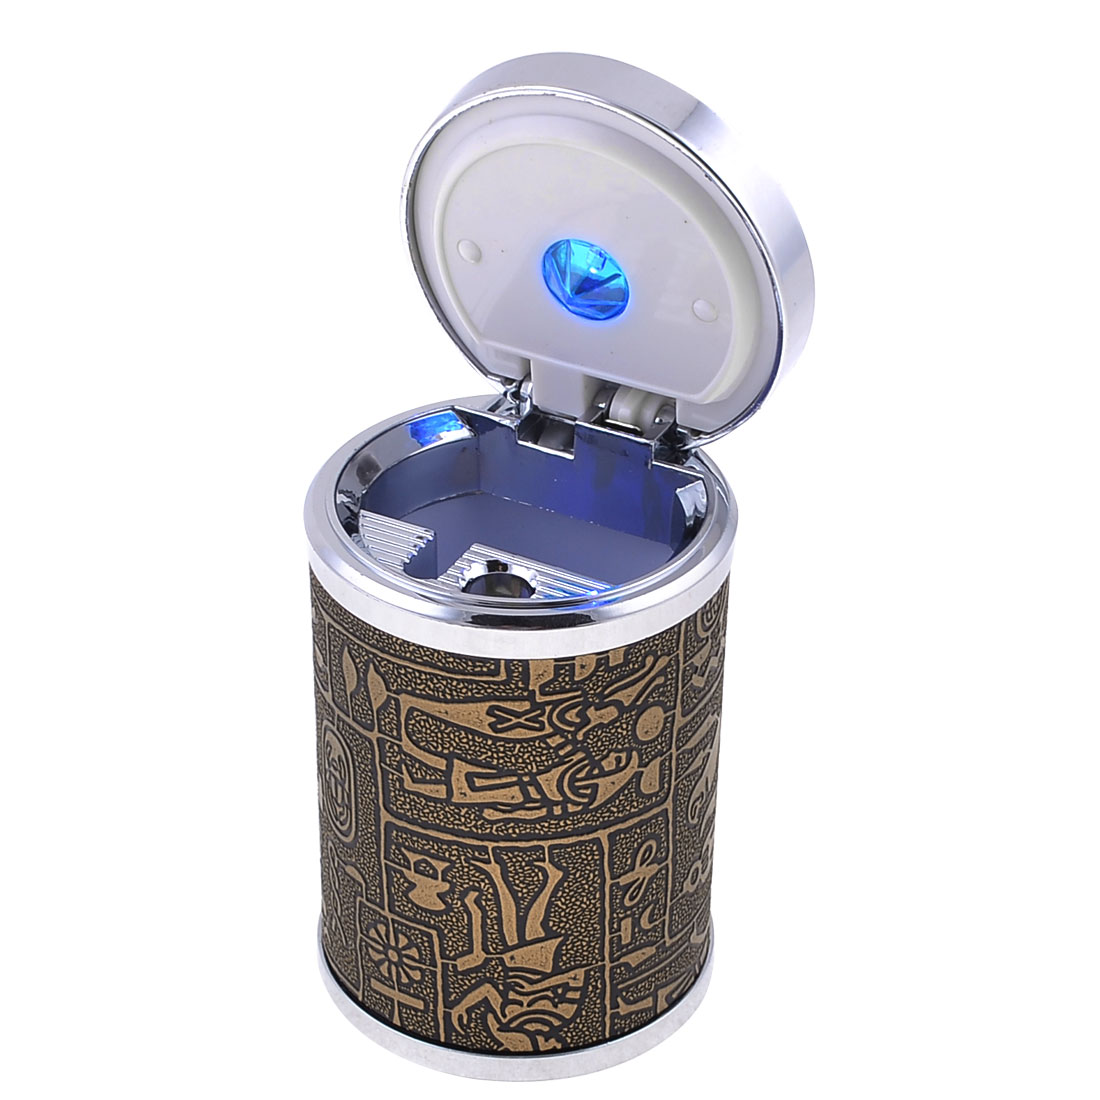 Portable Plastic Cylinder Shaped Ashtray for Car, with Blue LED Light, Brown Sliver Tone